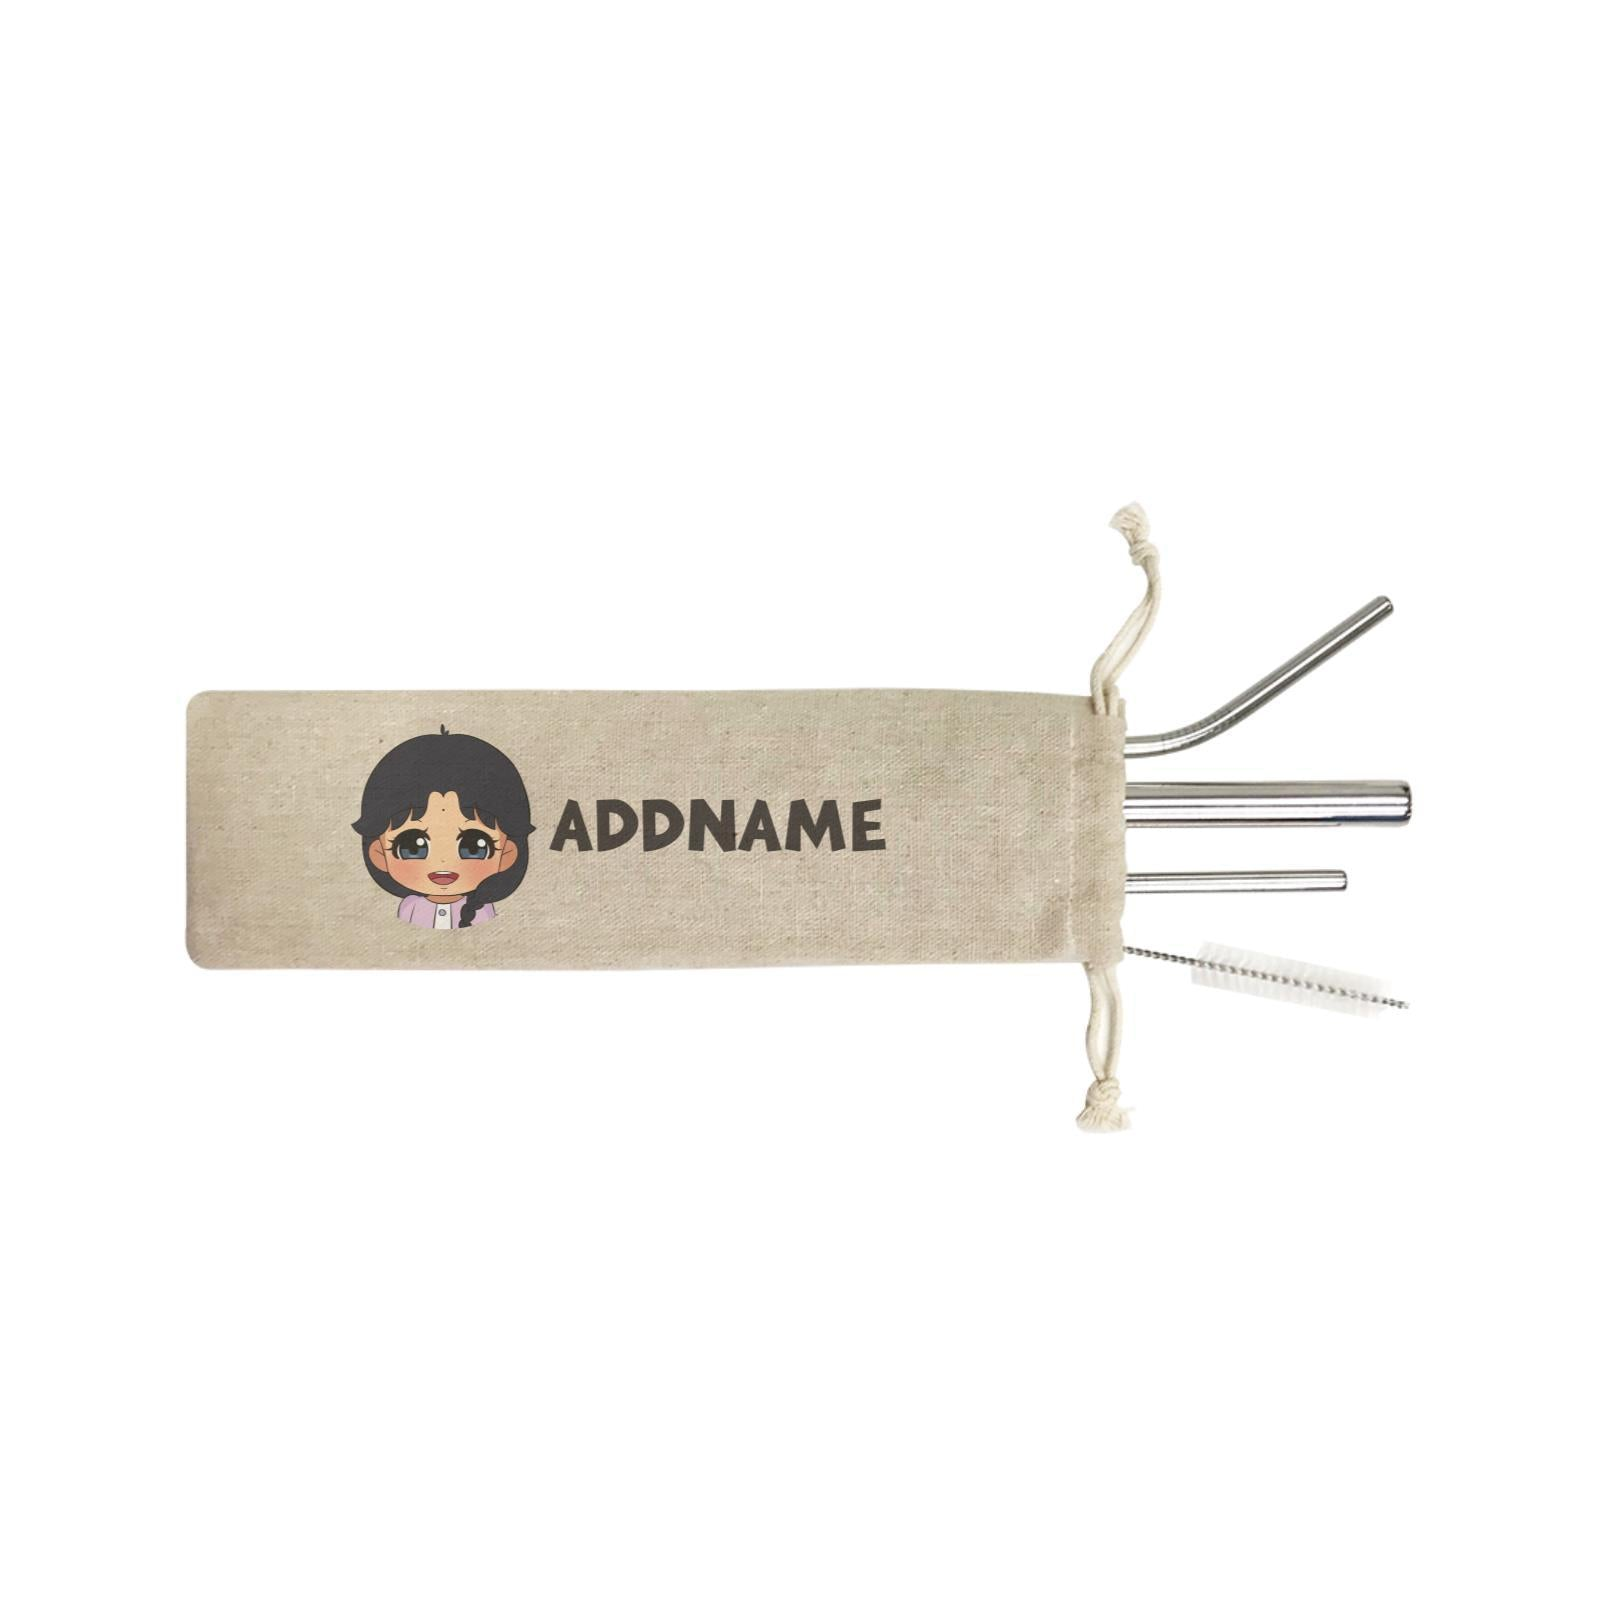 Children's Day Gift Series Little Indian Girl Addname SB 4-in-1 Stainless Steel Straw Set In a Satchel